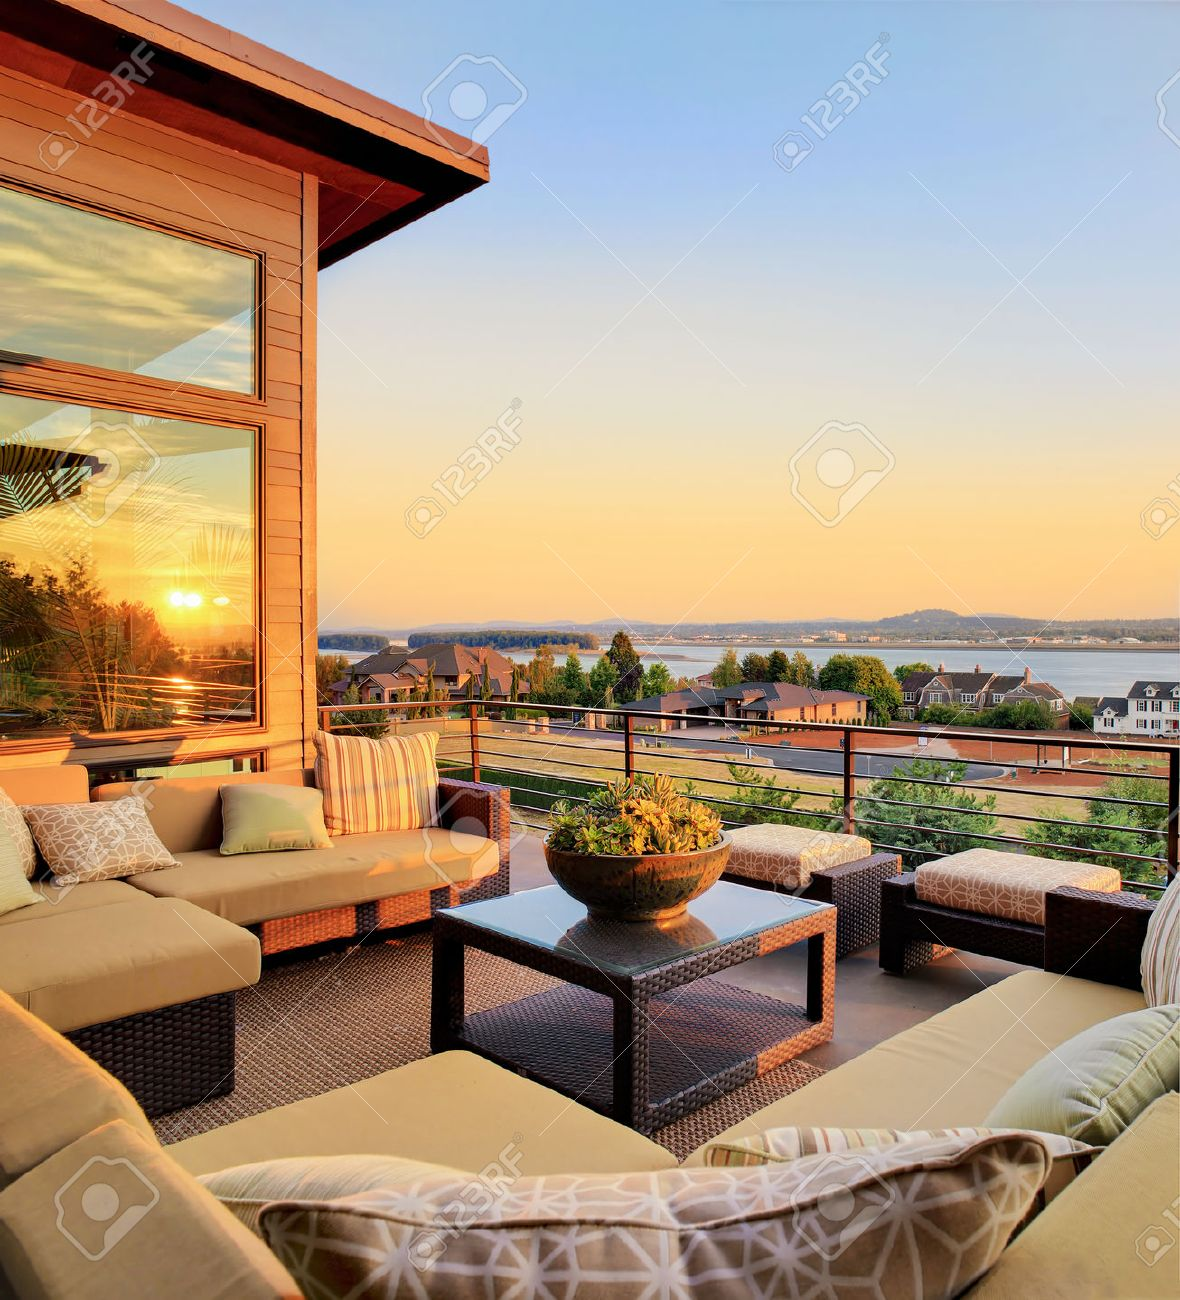 Patio Outside Luxury Home With Beautiful Sunset View Of City Stock